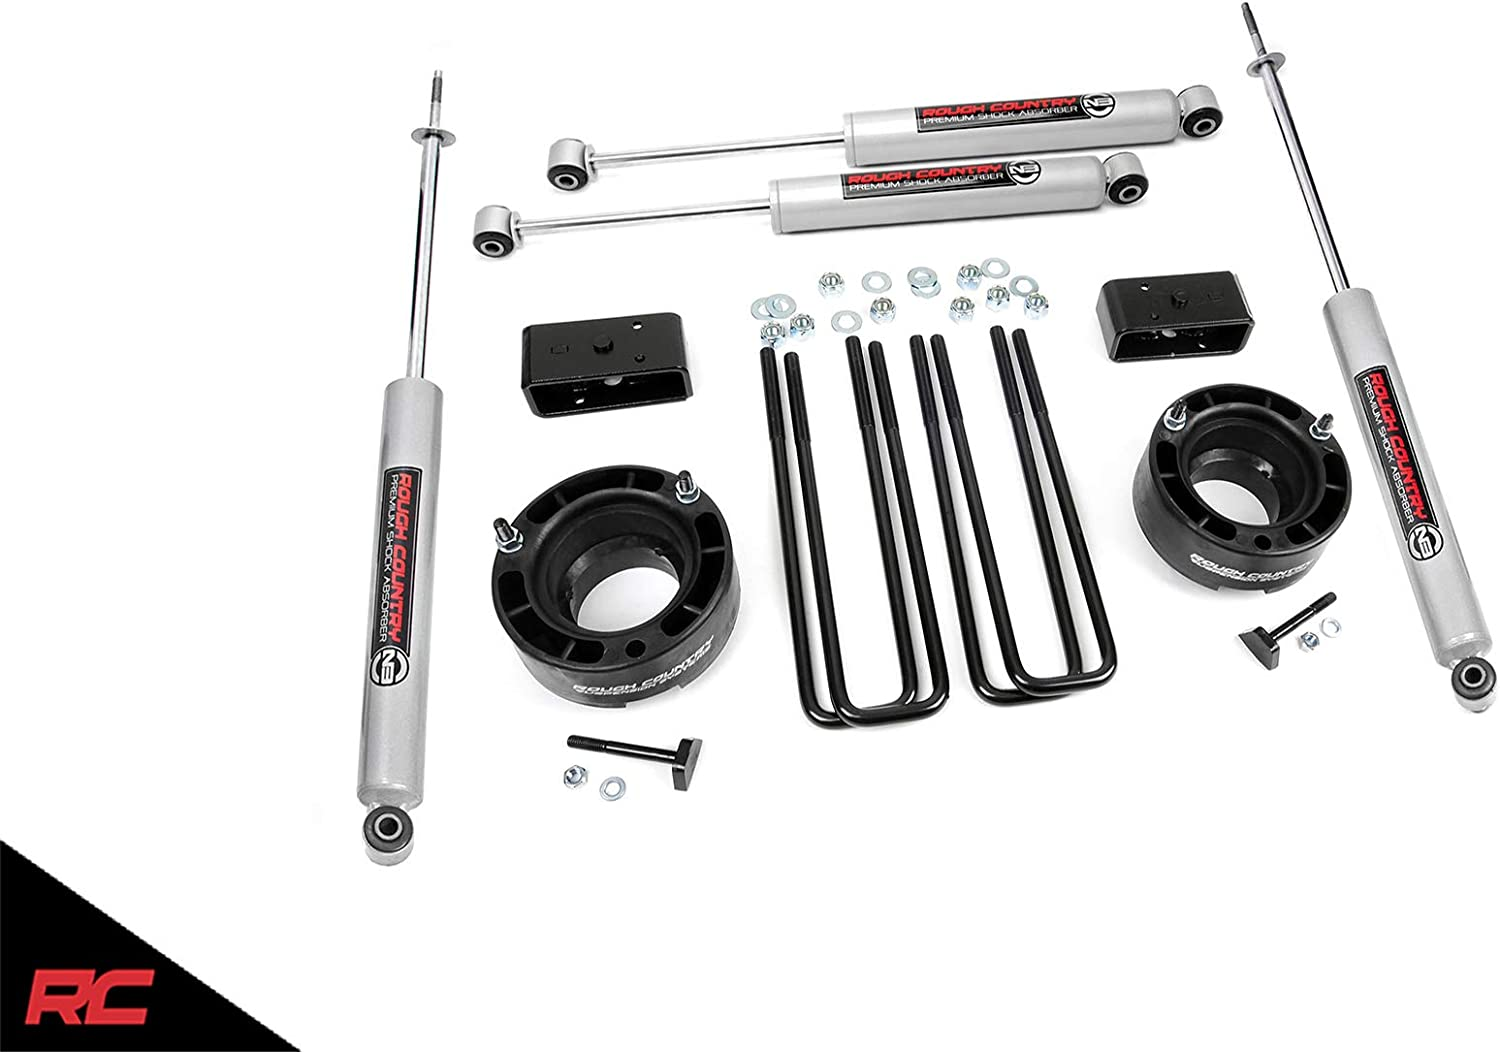 Rough Country 2.5 Leveling Kit 1994-2001 RAM Truck 1500 Suspension System 362.20 fits